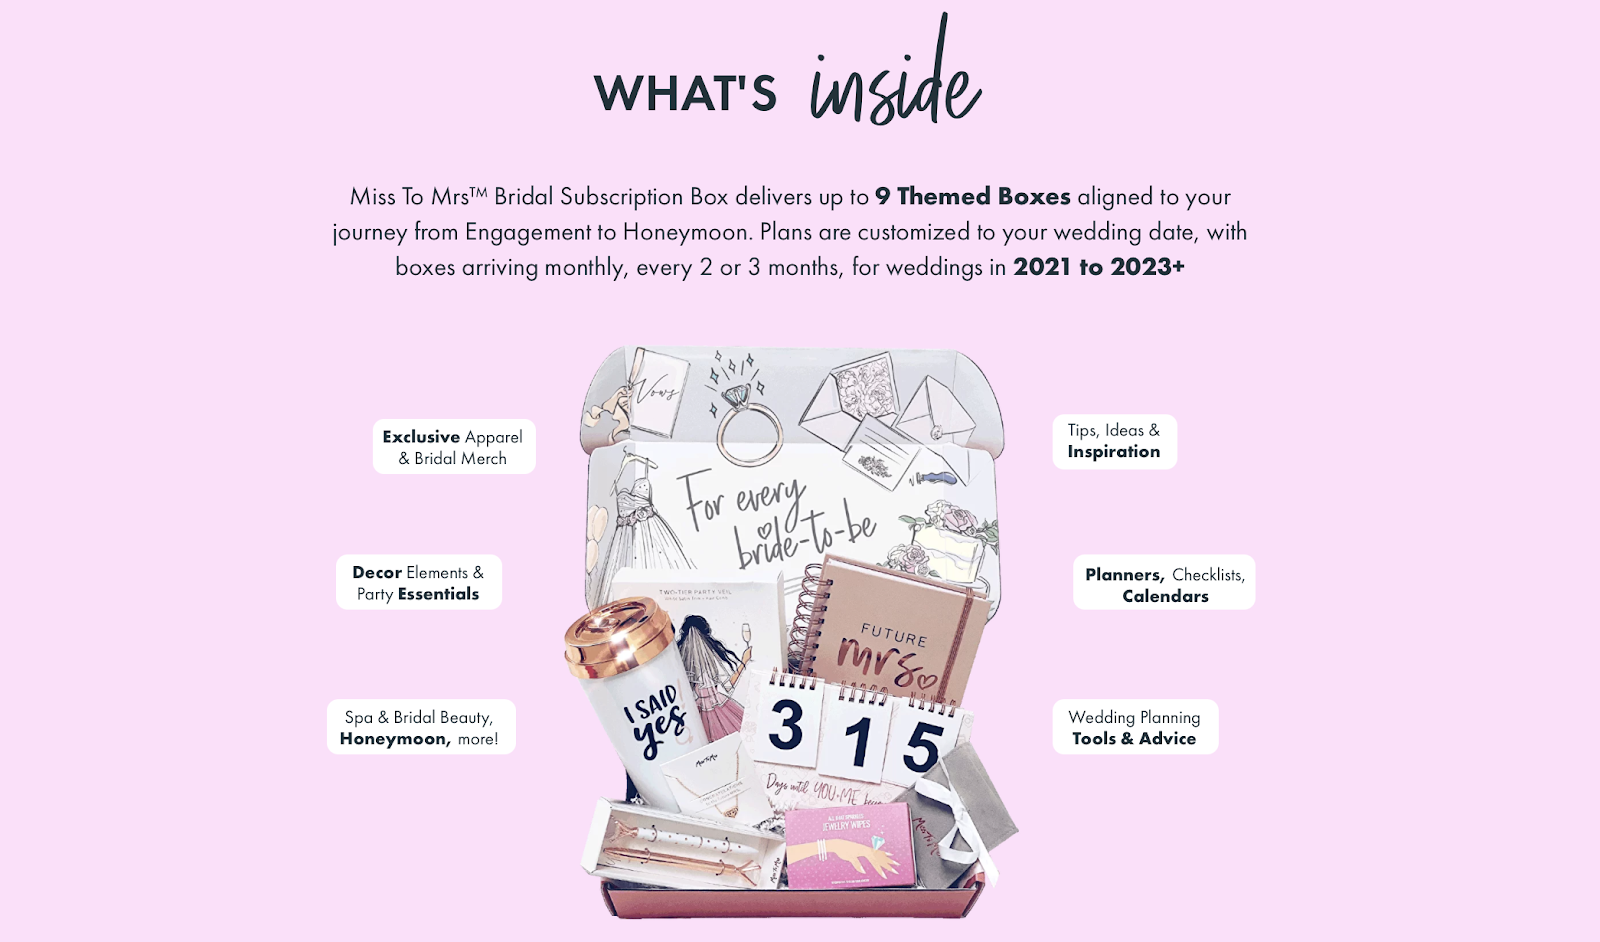 whats inside Miss to Mrs bridal subscription boxes